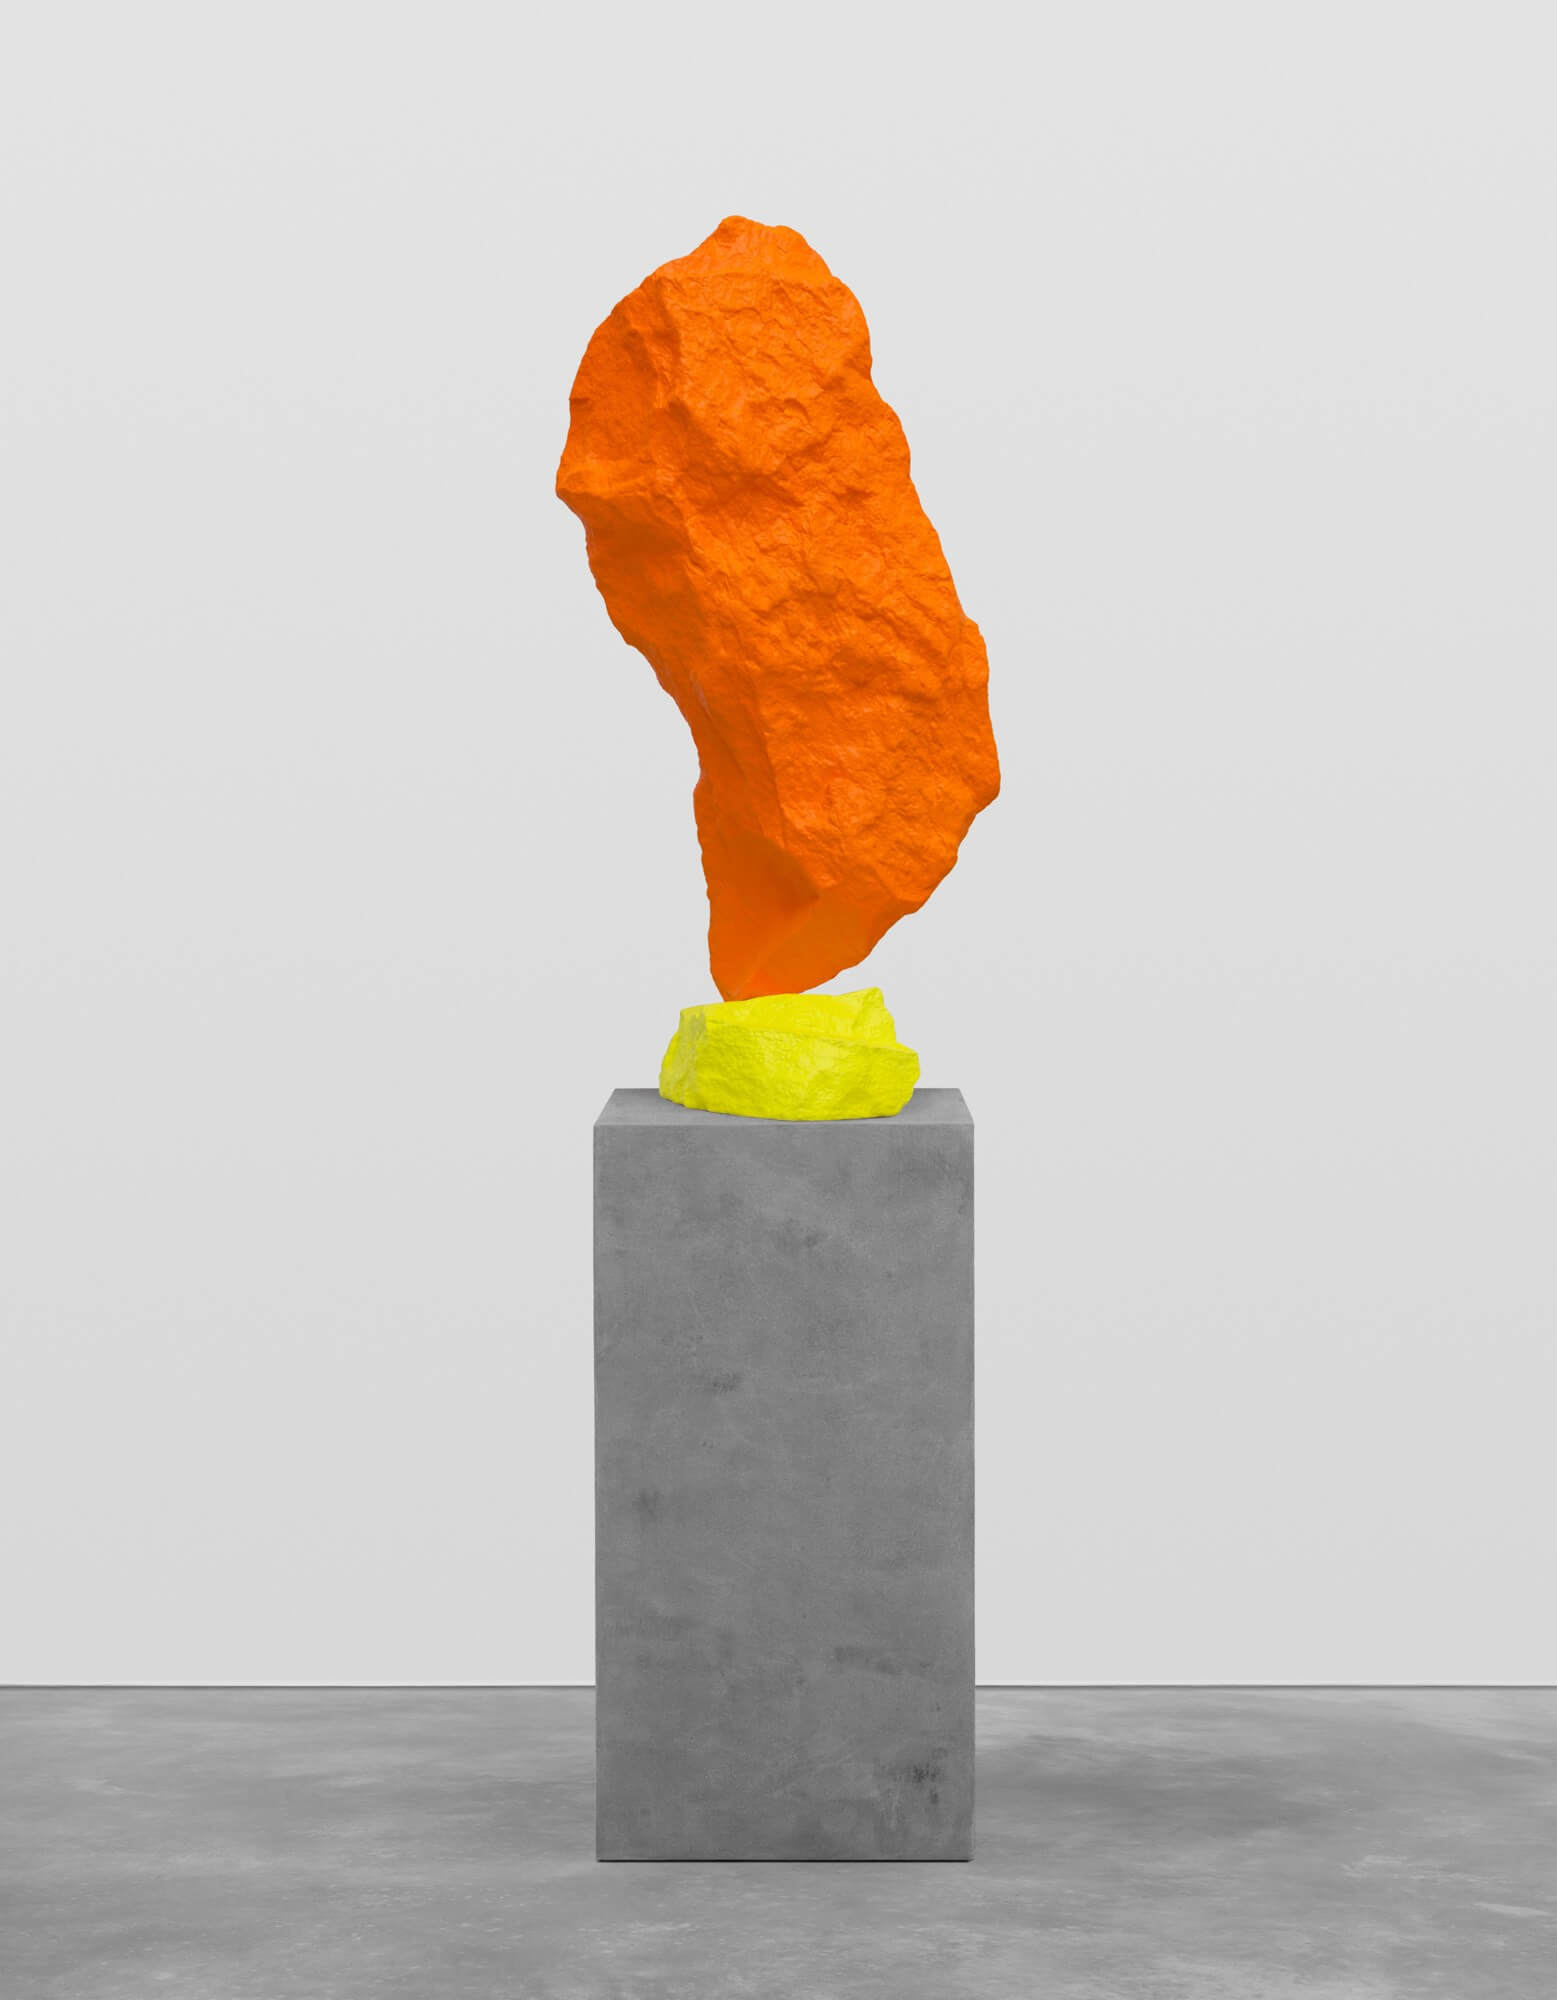 yellow orange mountain | UGO RONDINONE